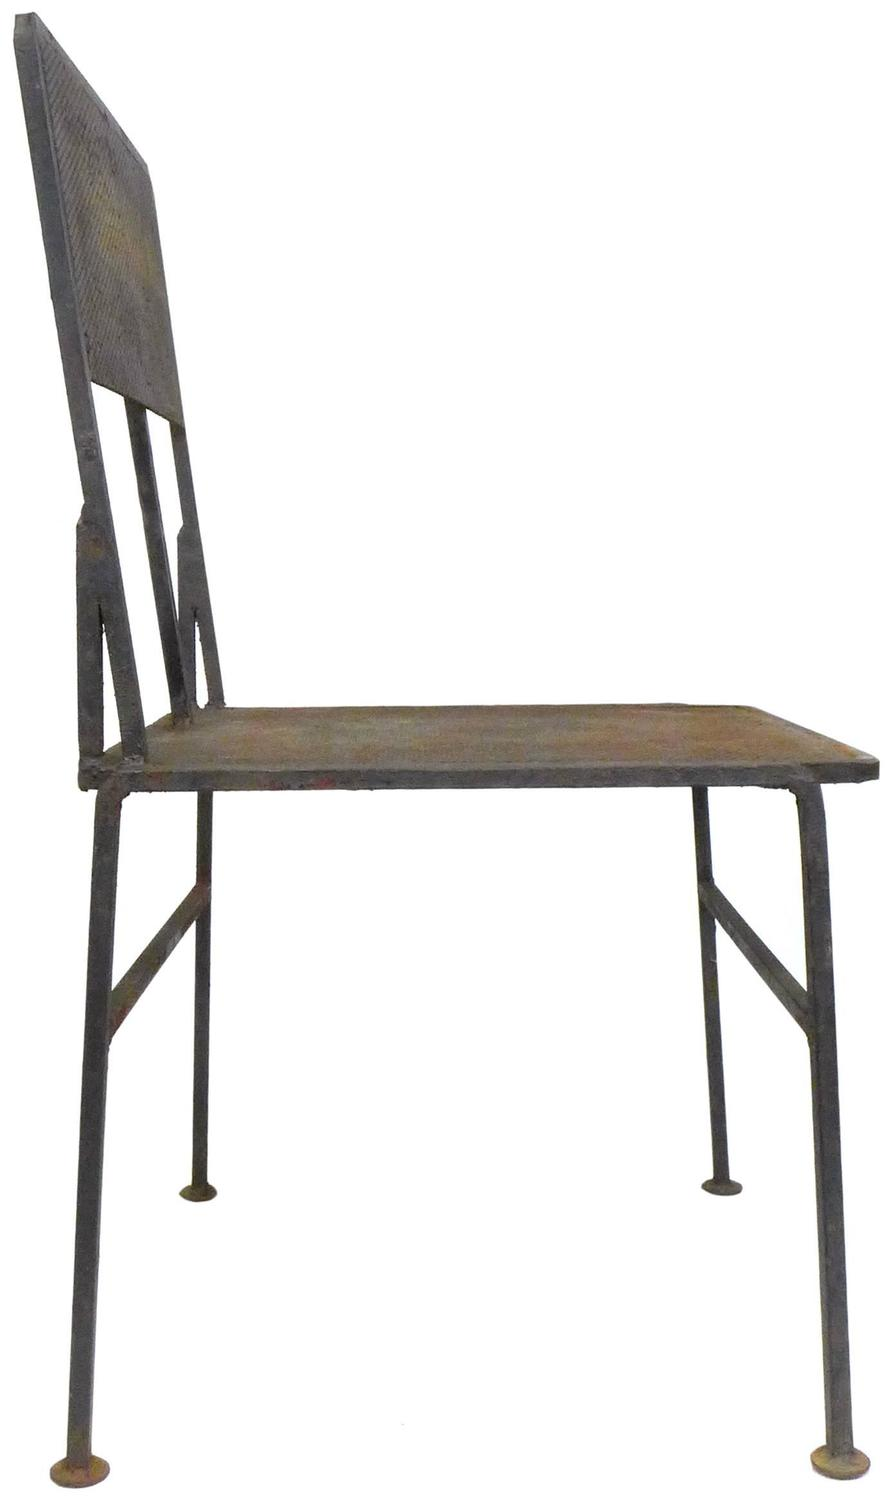 perforated iron outdoor table and chairs set at 1stdibs